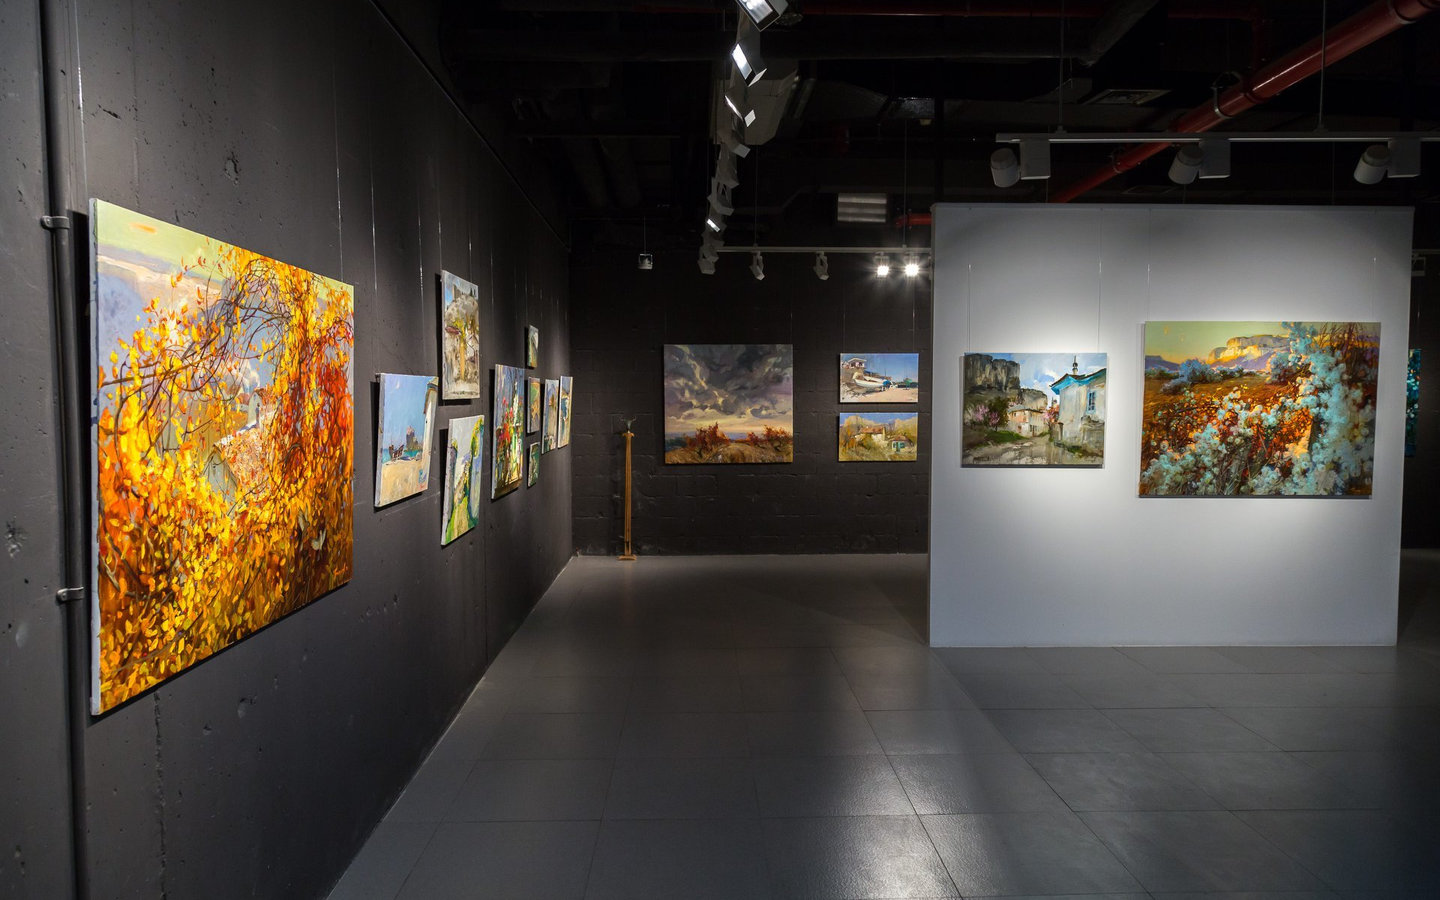 Artworks displayed in N2N Gallery in Abu Dhabi